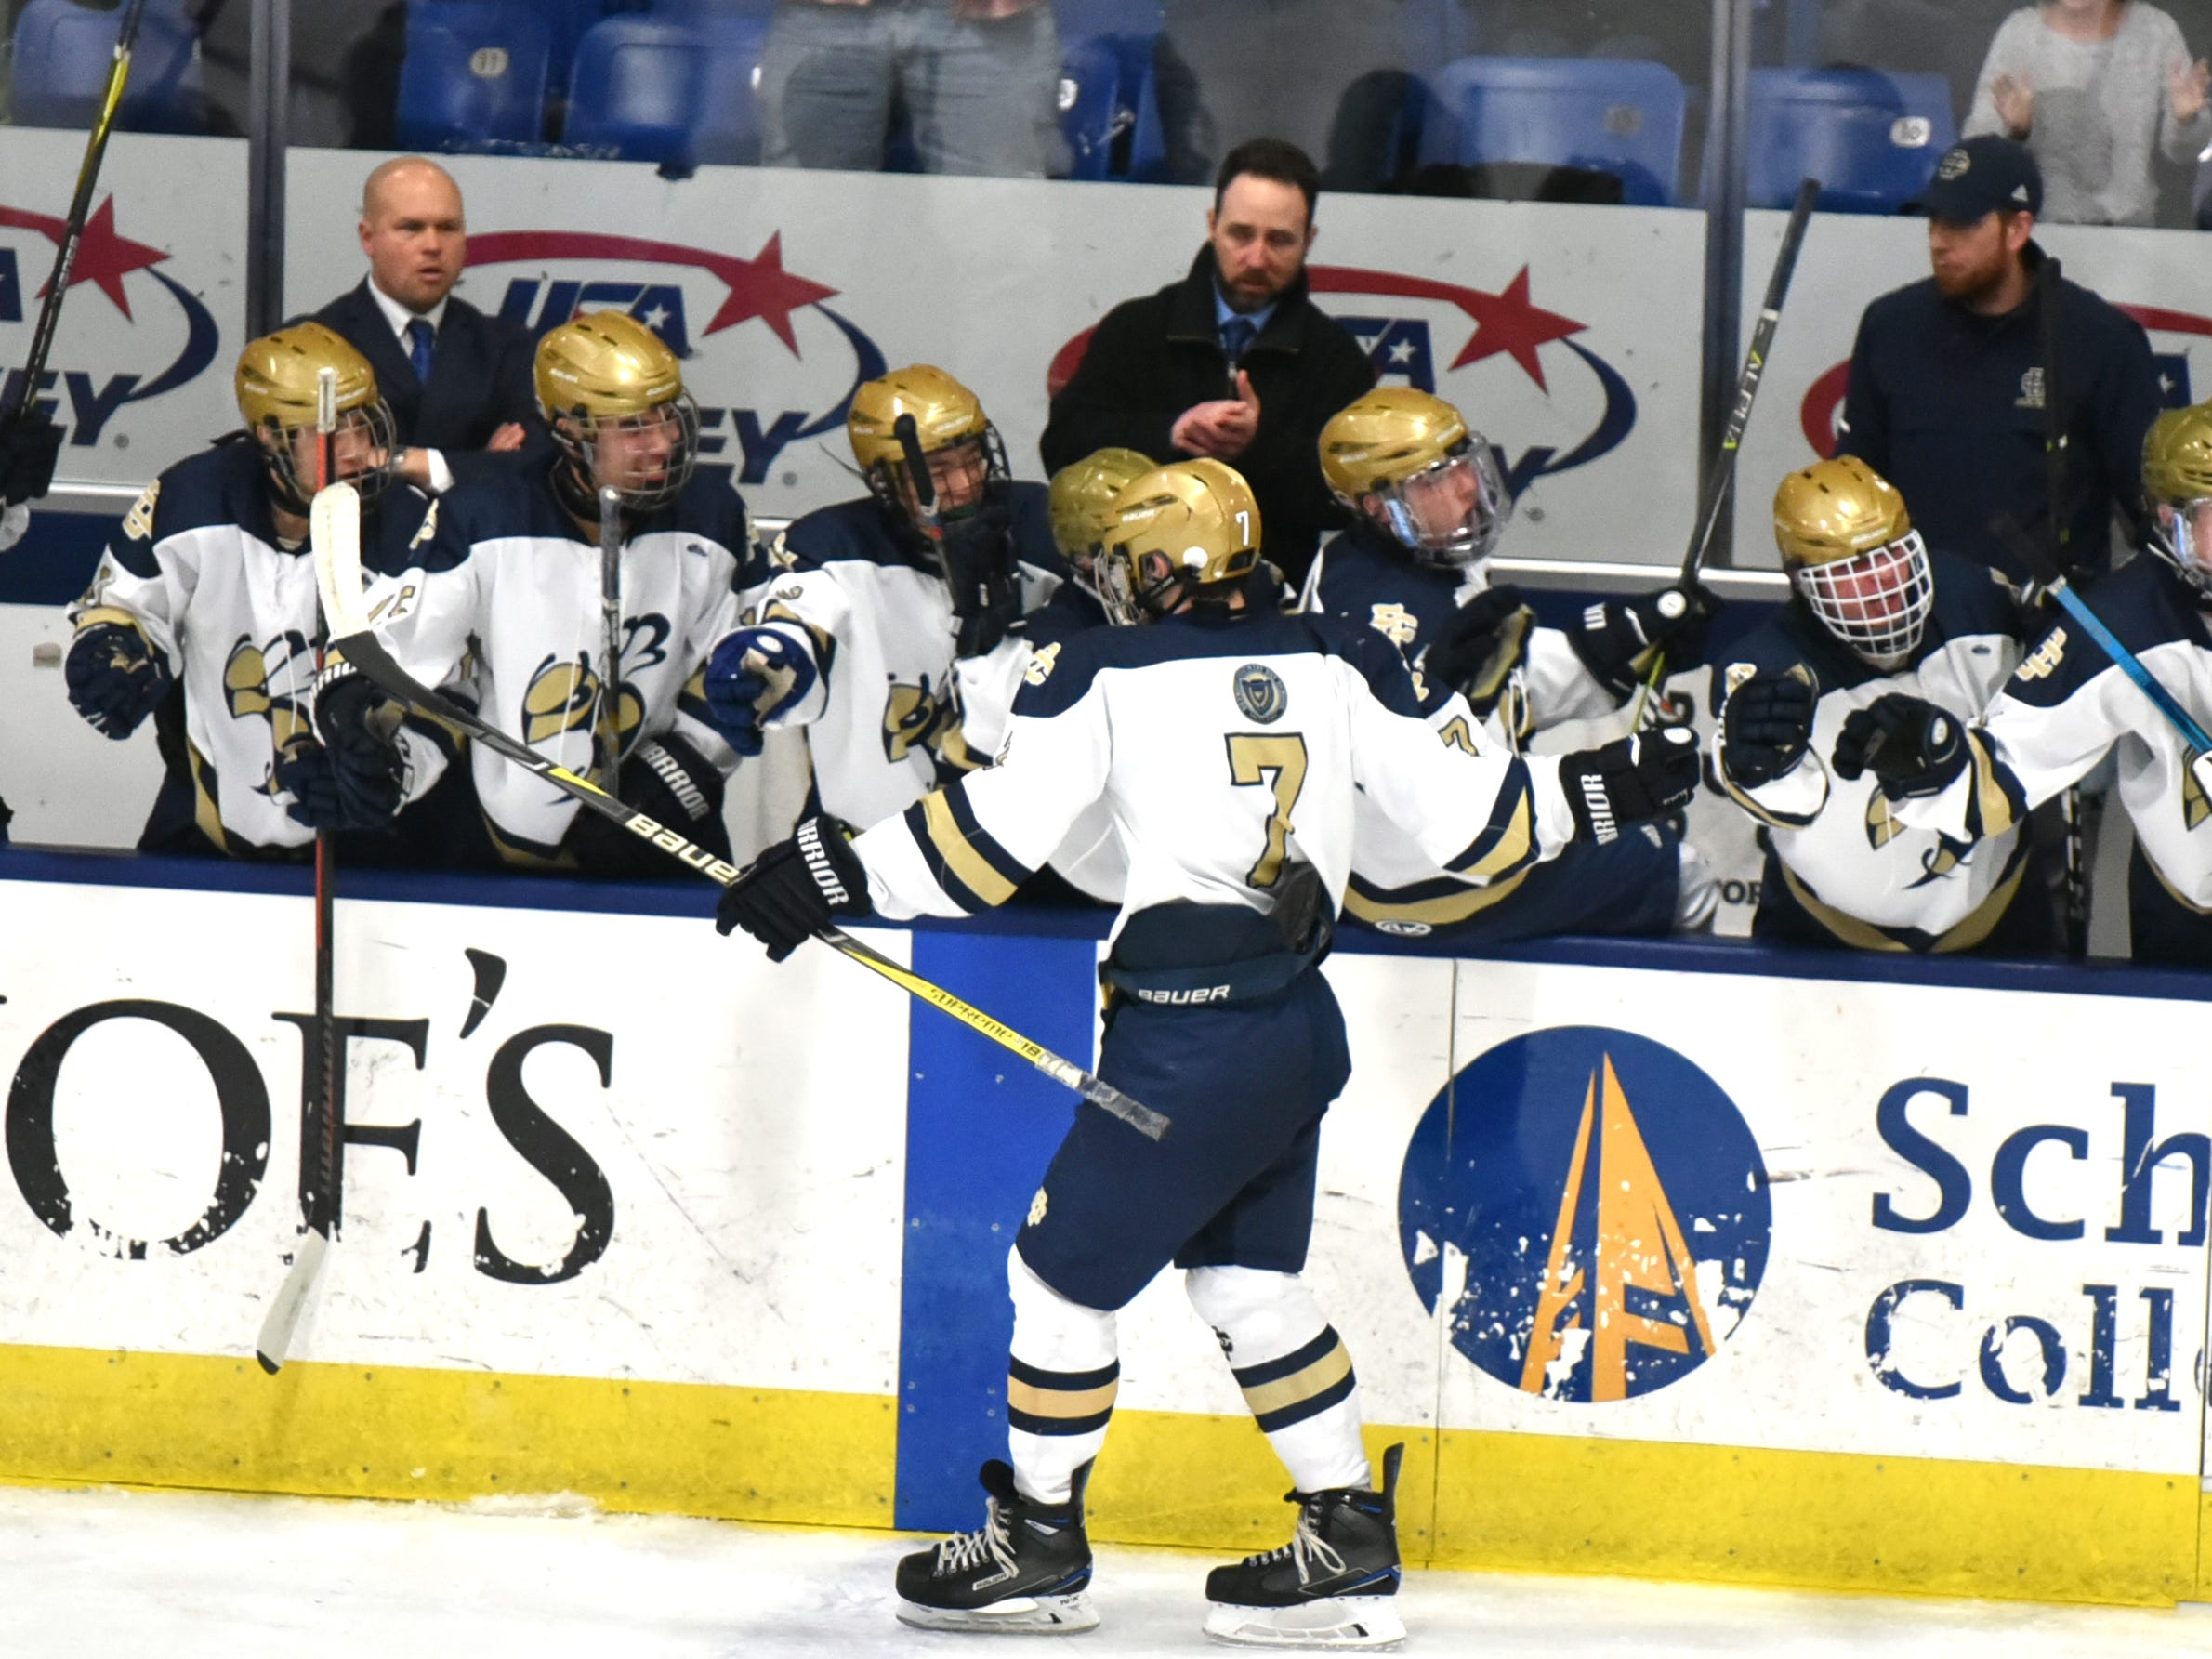 Country Day hockey player Dalas Hood celebrates his - and DCD's second goal with his teammates on the bench.